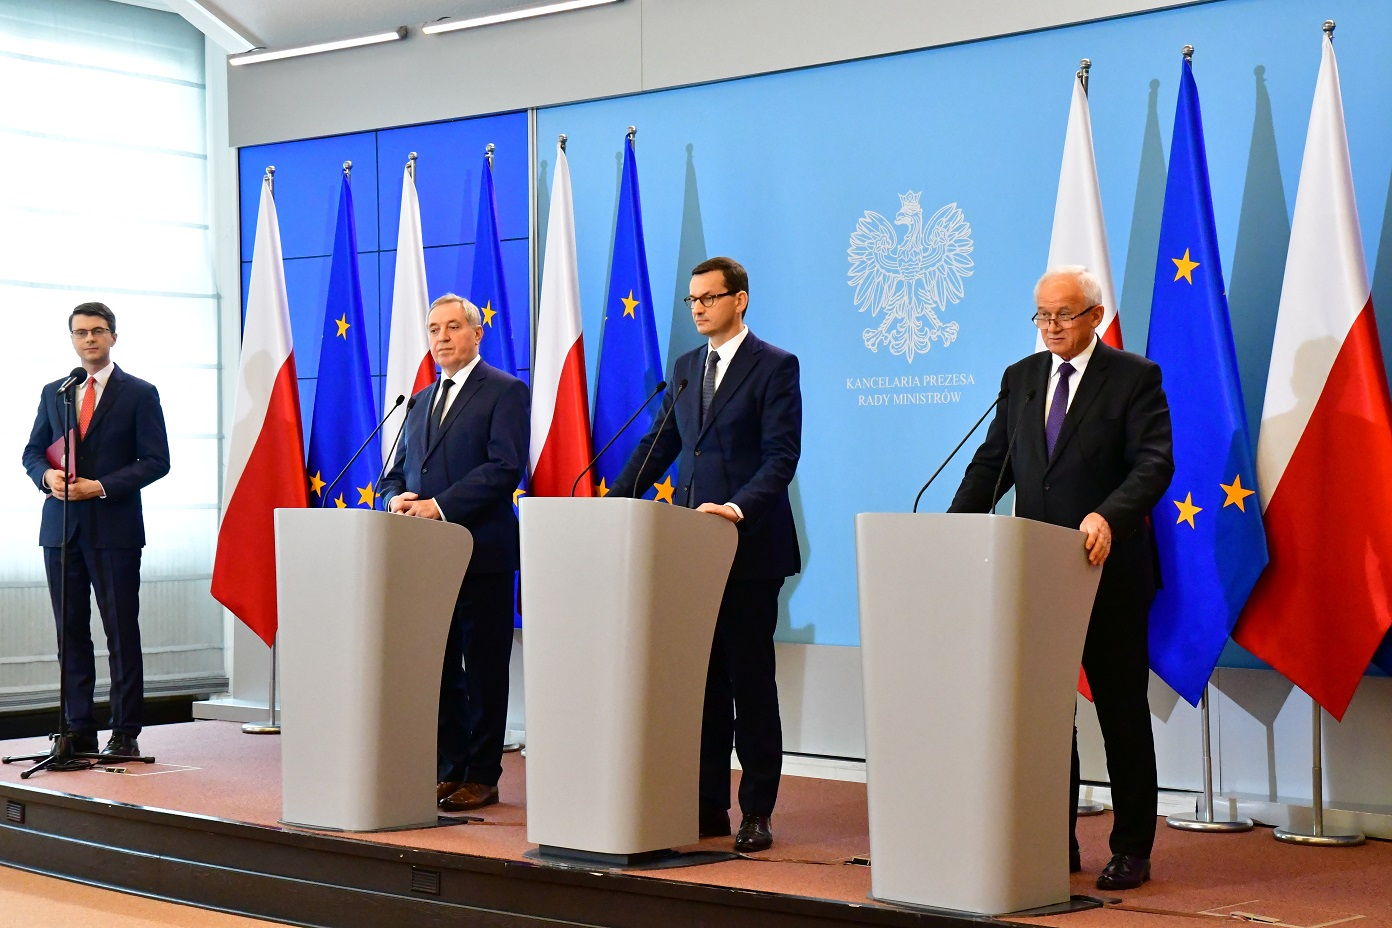 Prime minister Mateusz Morawiecki (centre) said Poland wants to bring about